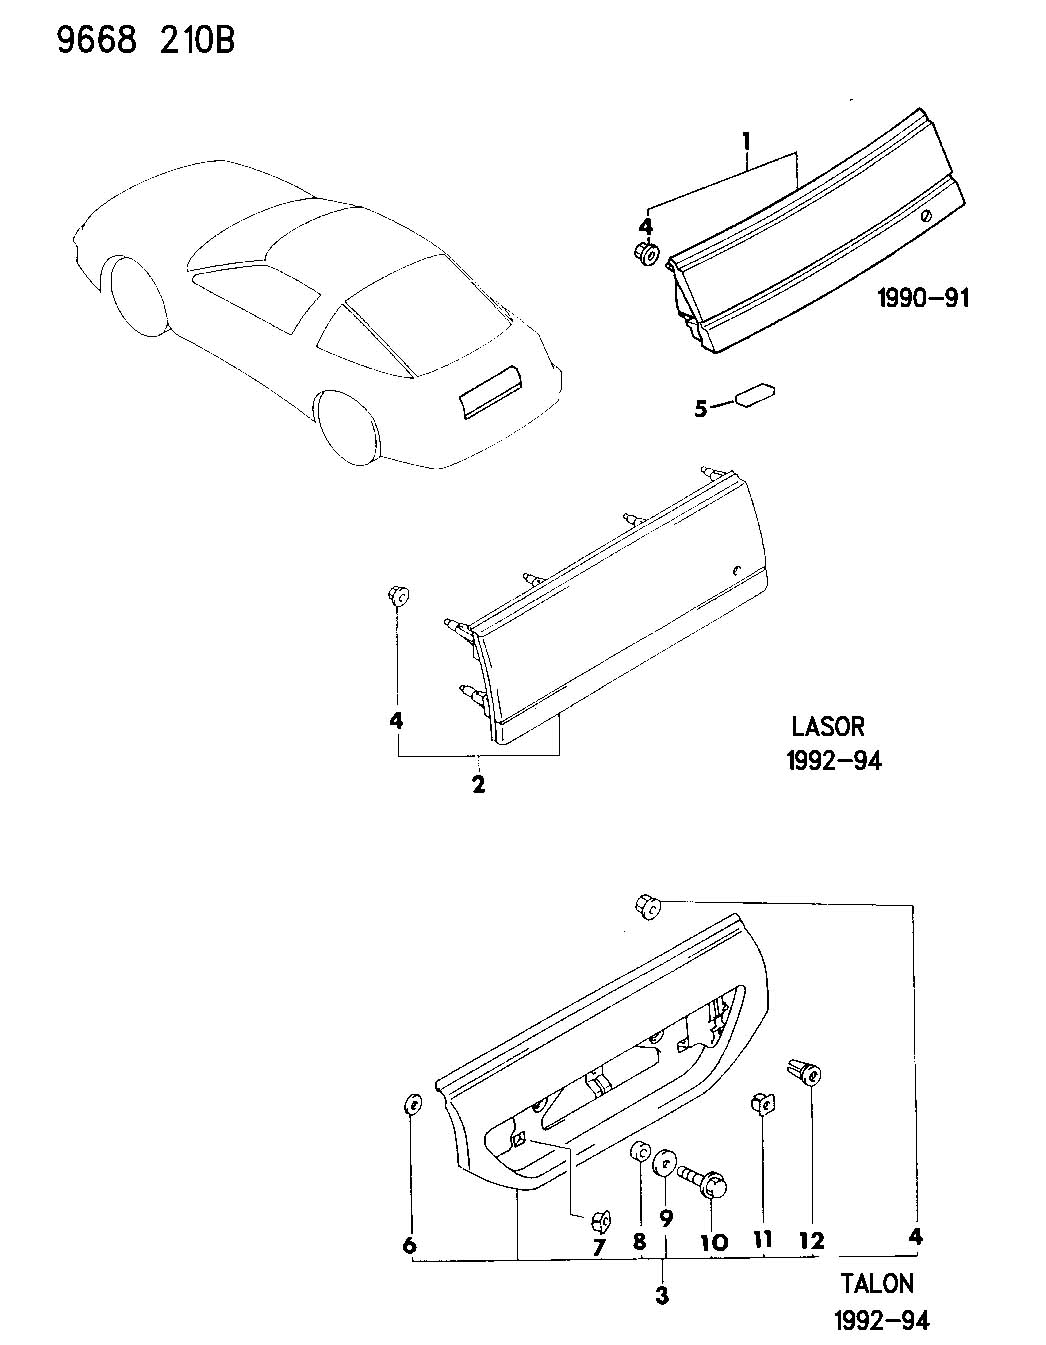 Service manual [1990 Plymouth Laser Digram For A Rear